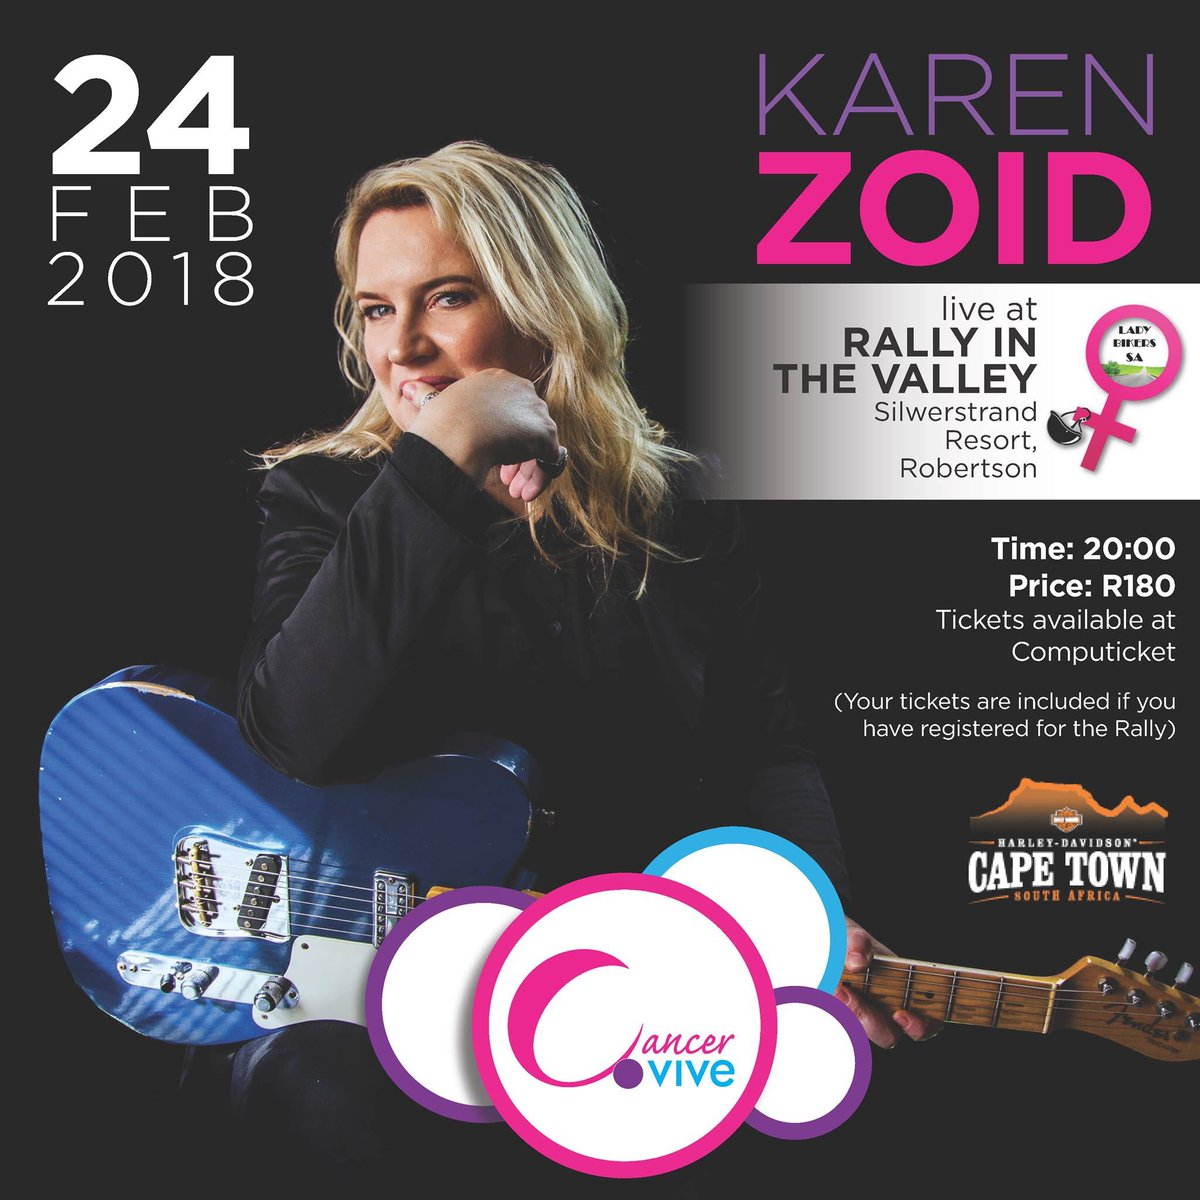 karenzoid photo